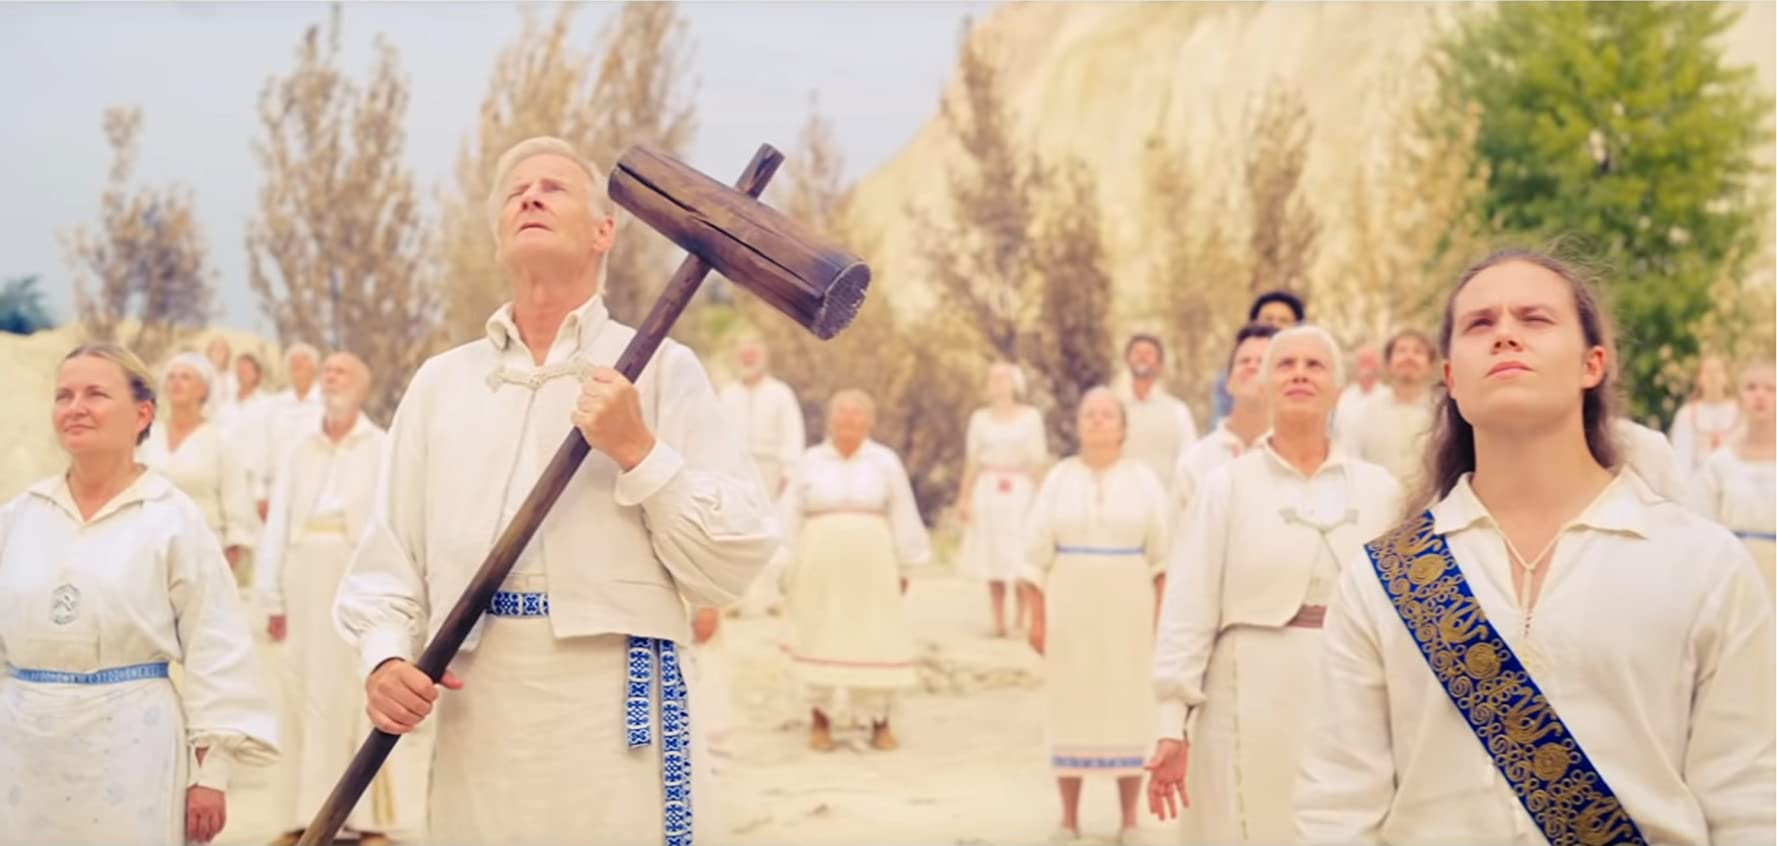 Lennart R. Svensson and Maximilian Slash Marton in Midsommar (2019)